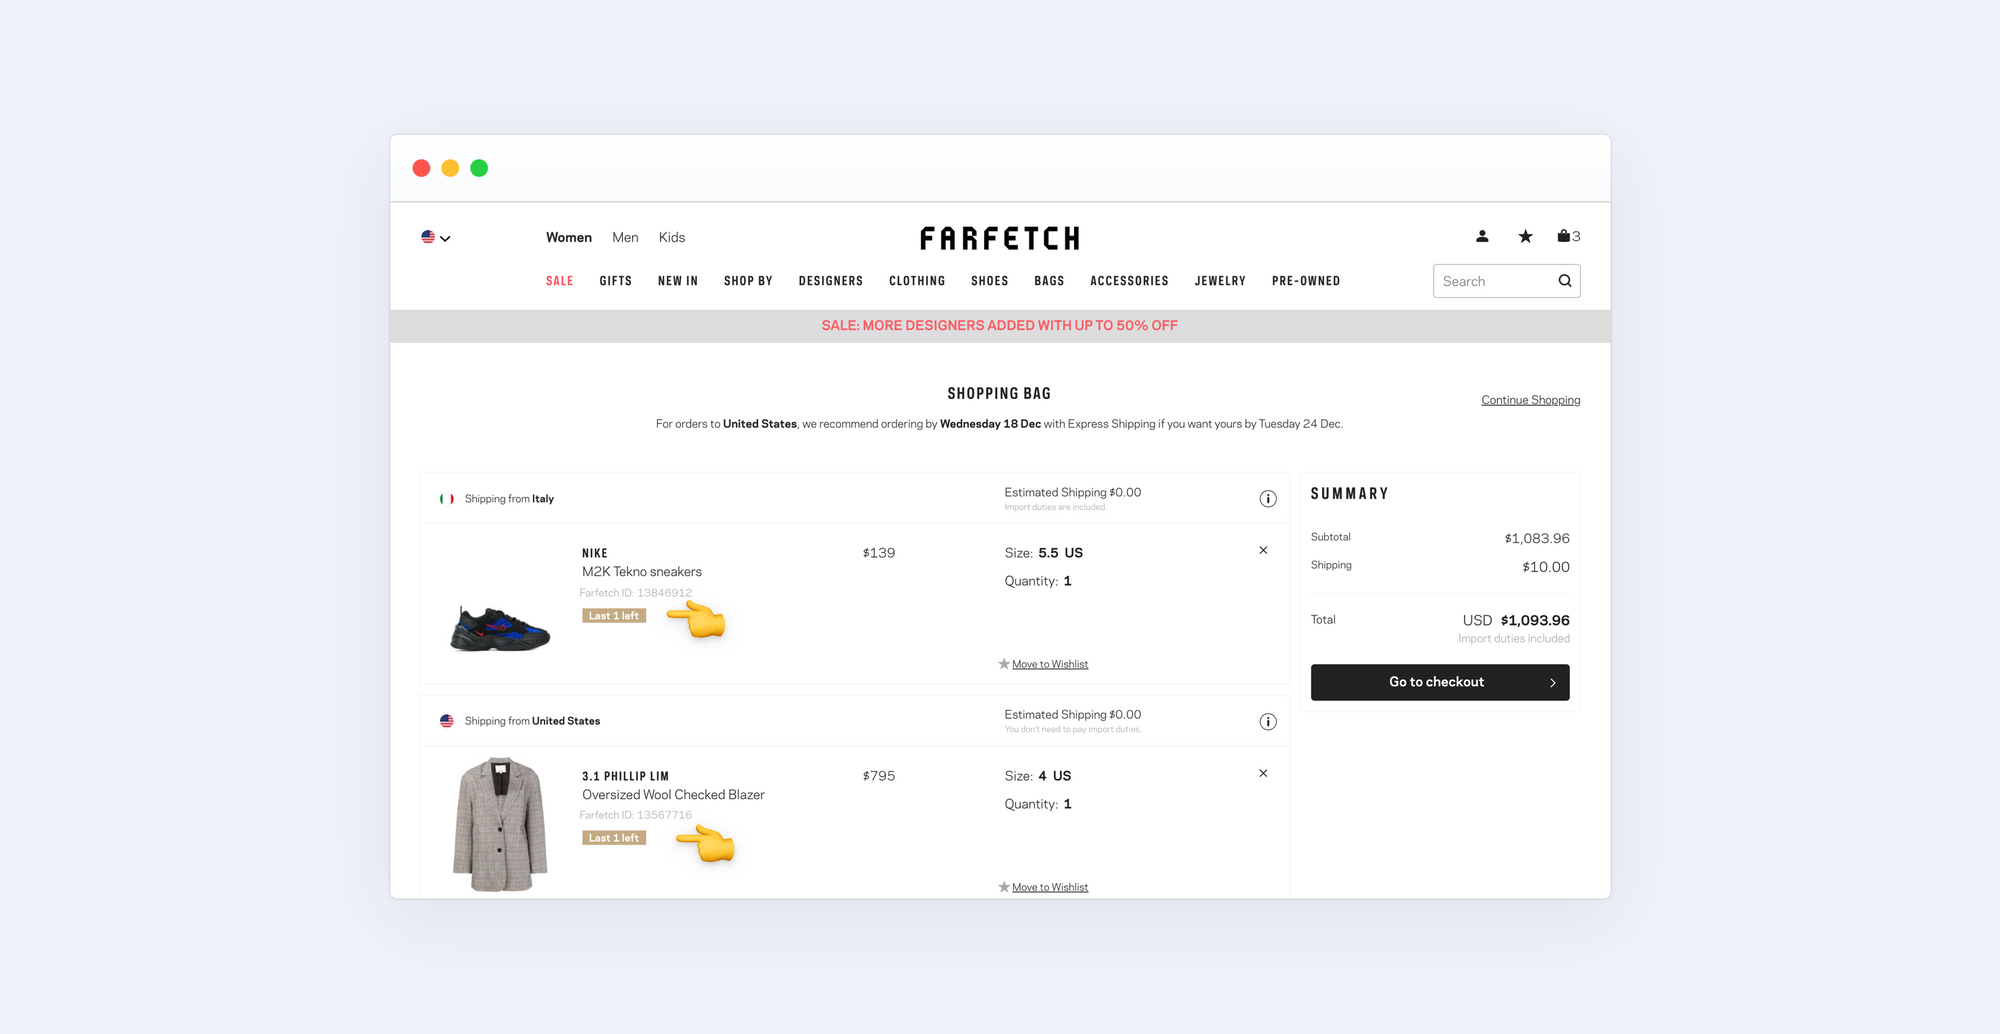 Stock availability popup in the shopping cart